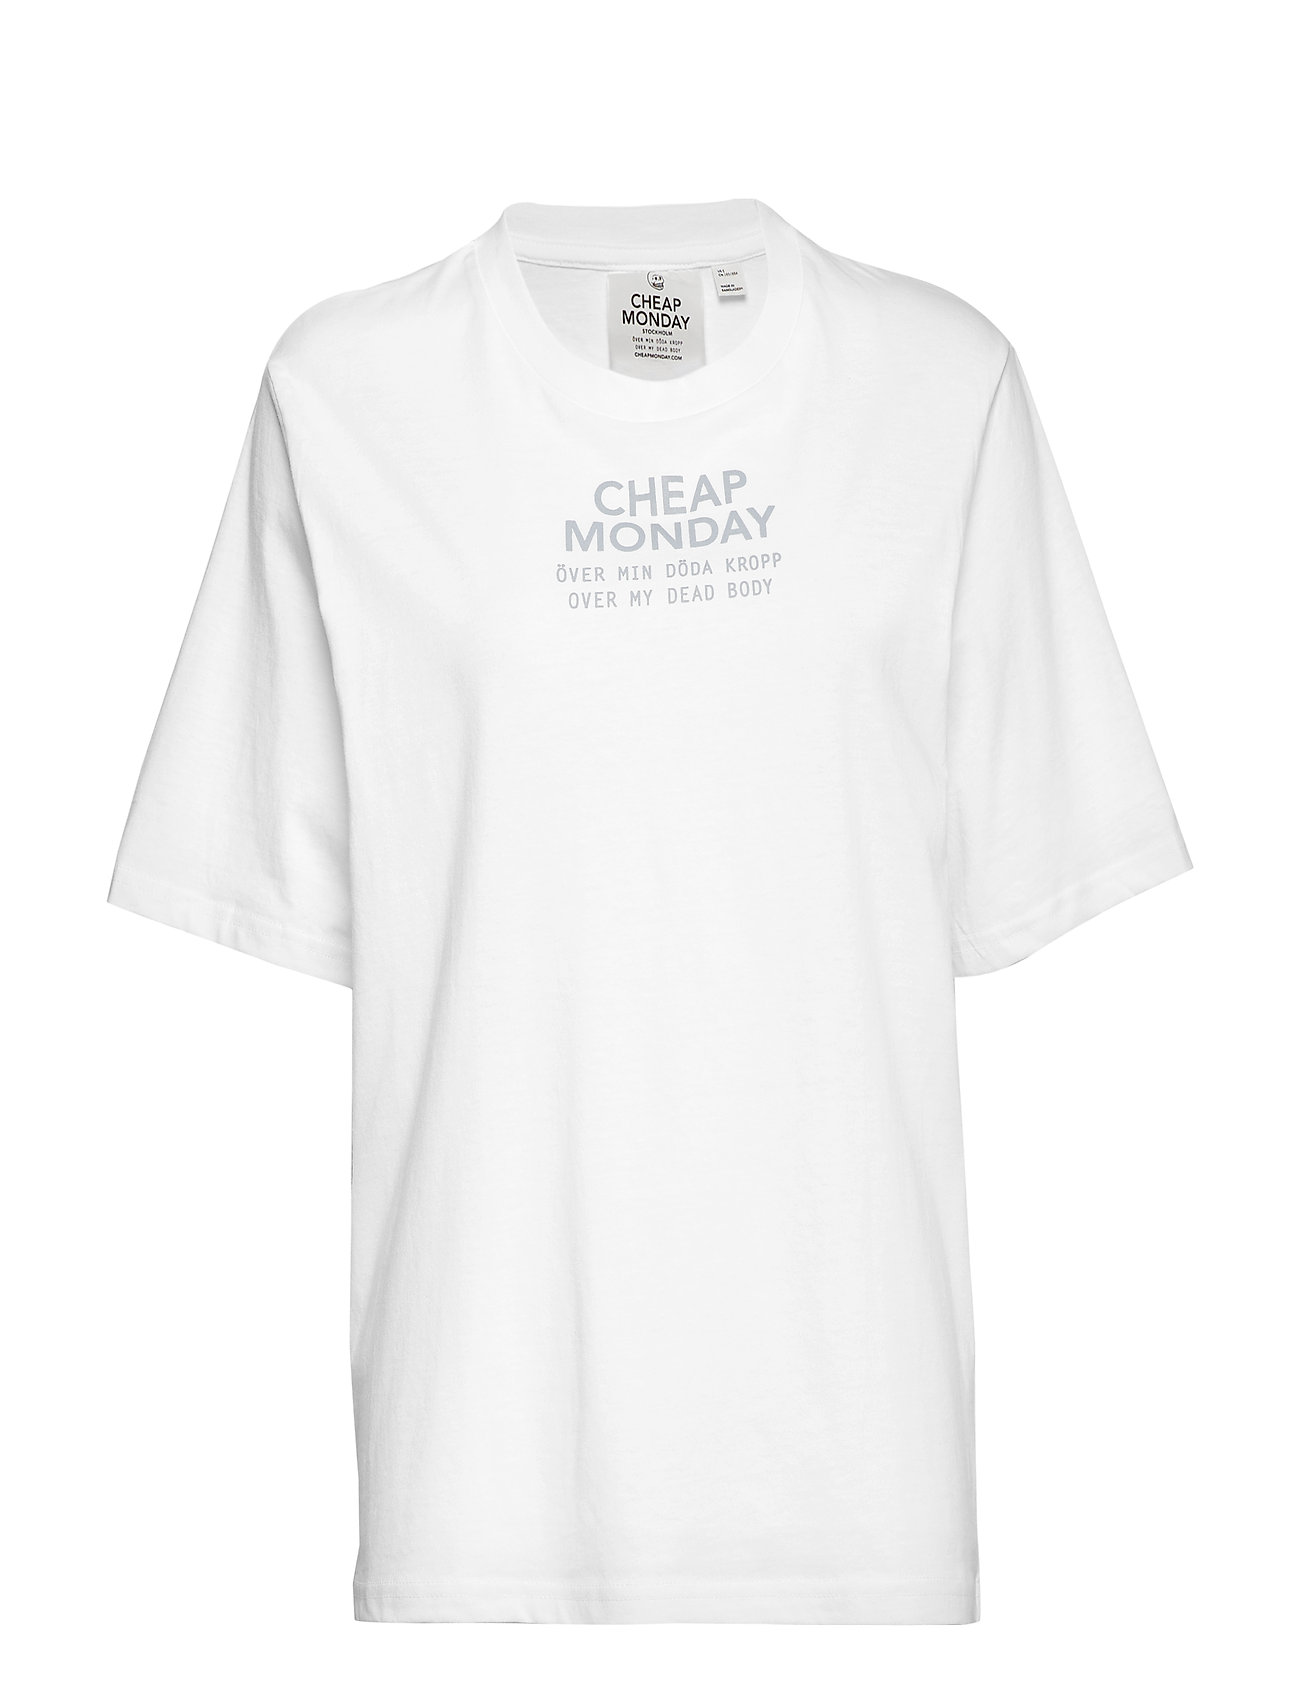 Cheap Monday Perfect tee Chp mnd sender - WHITE